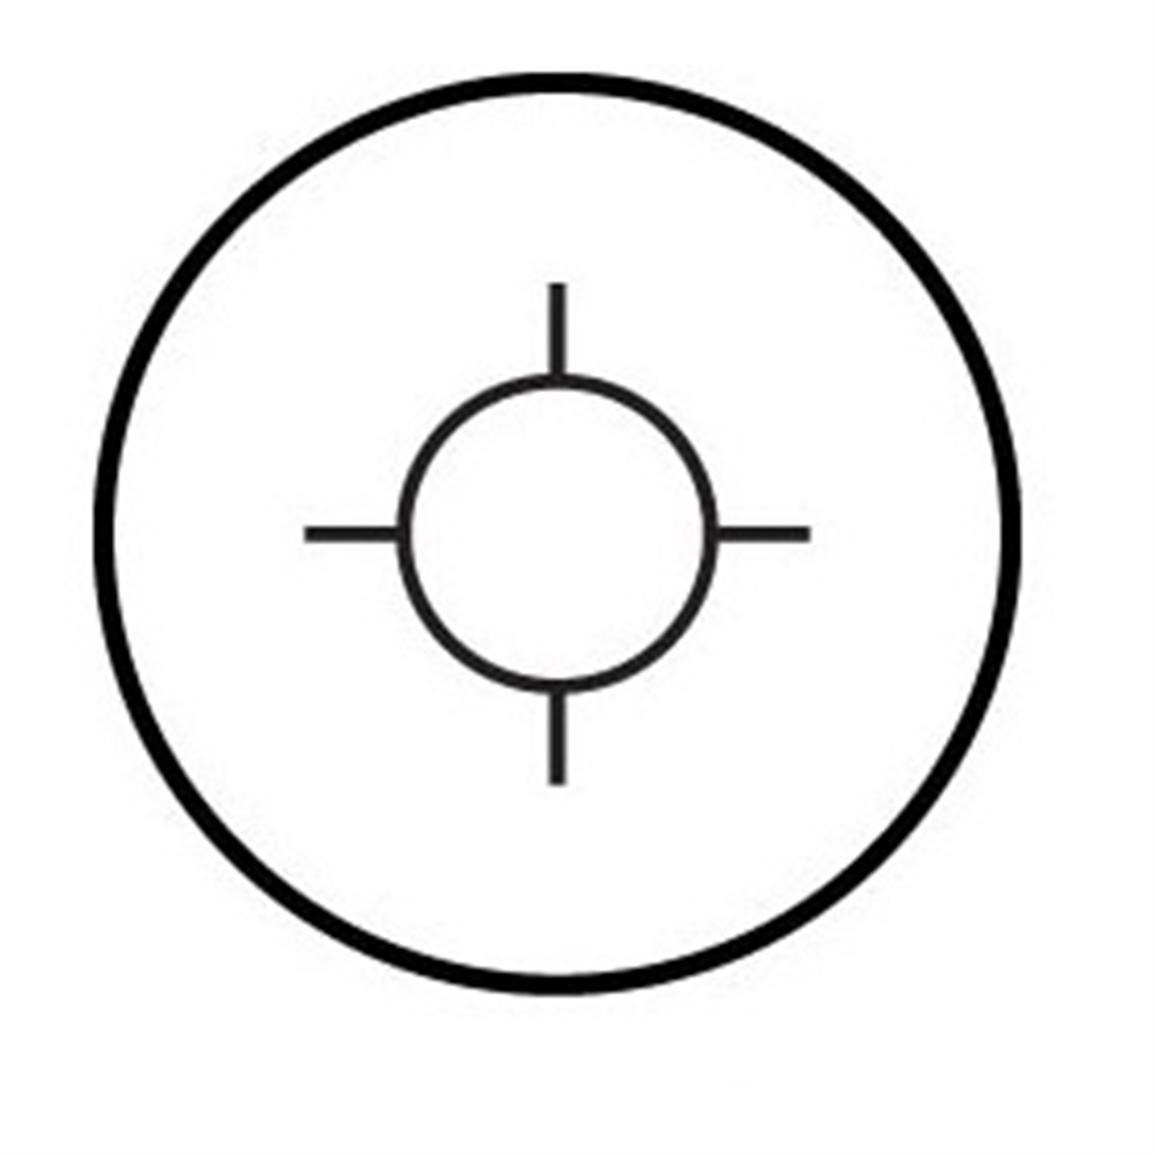 Star Reticle